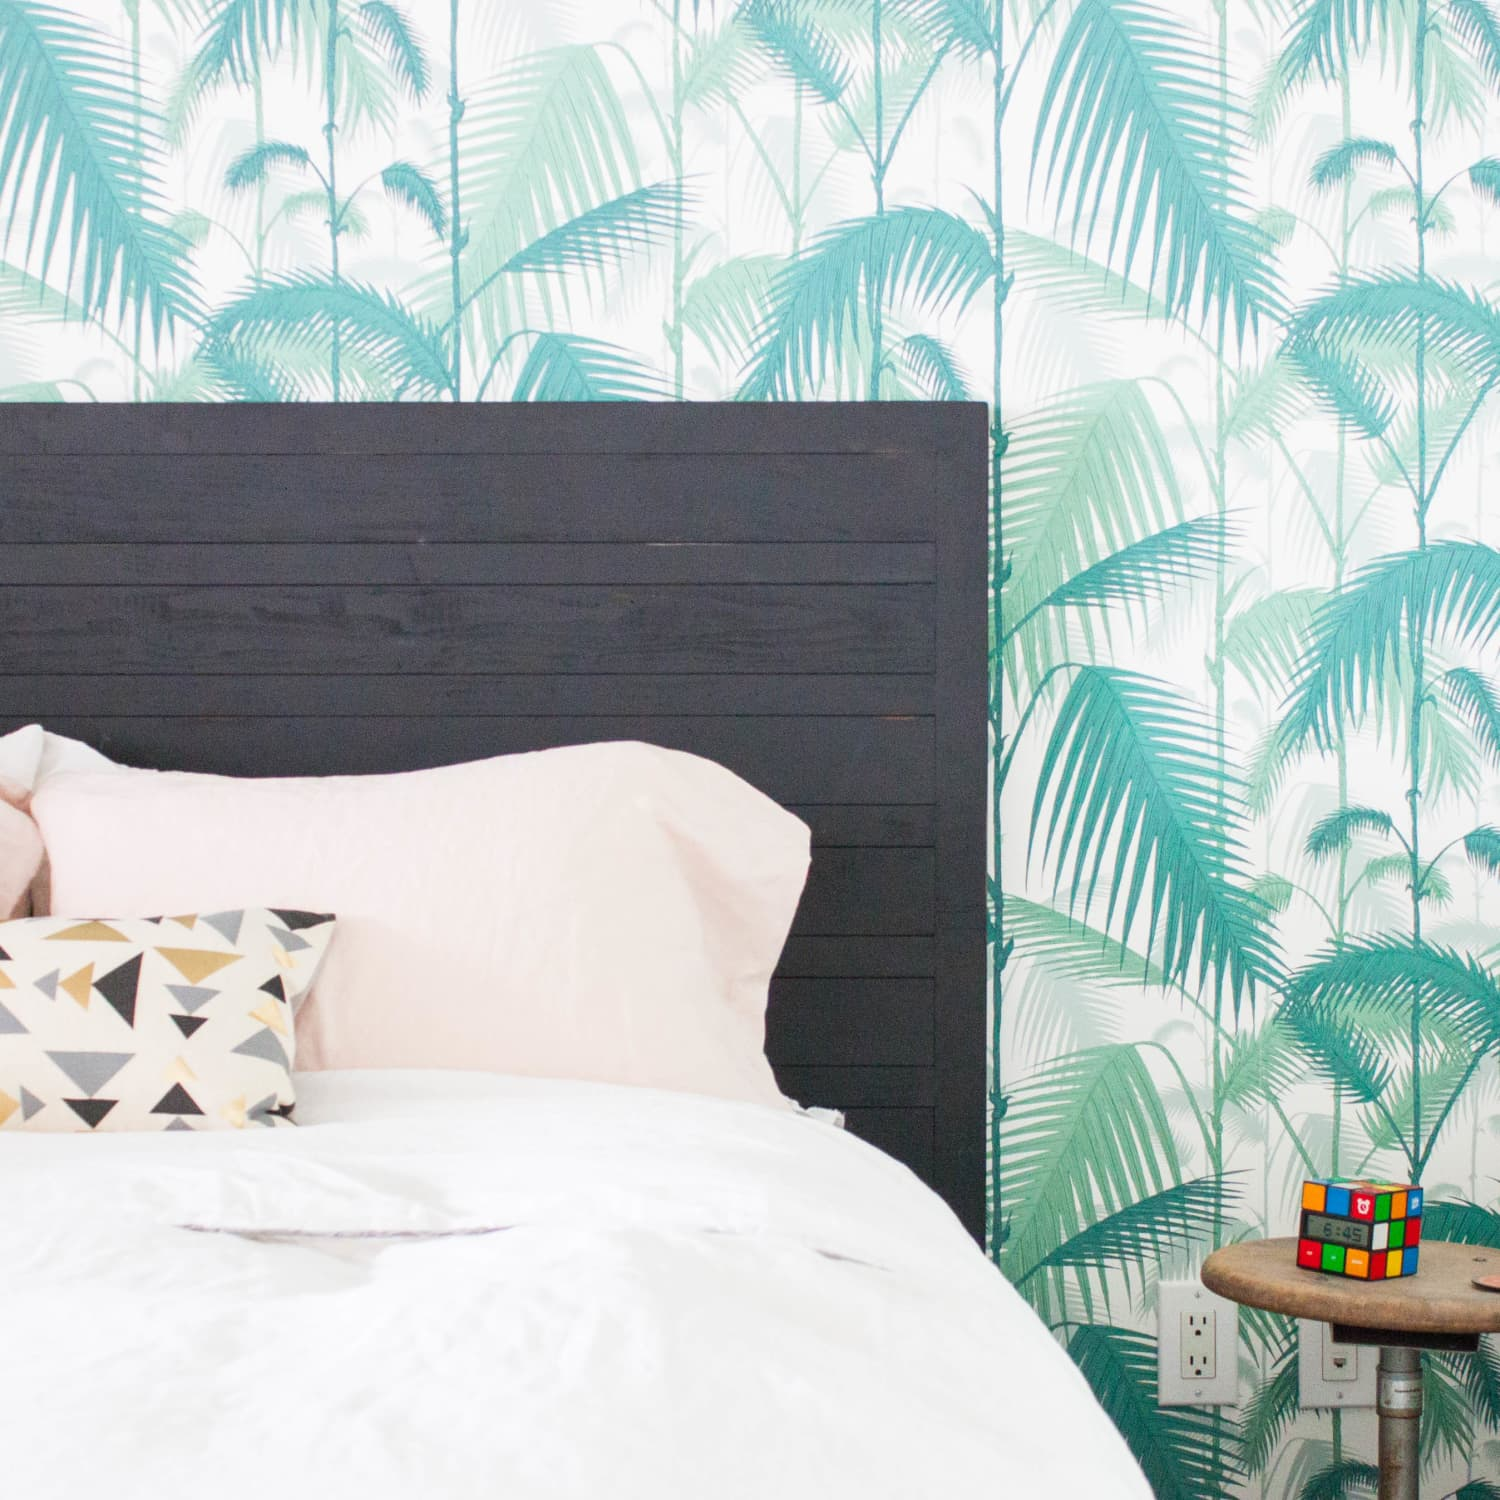 How To Remove Wallpaper Easy Quick Method Apartment Therapy